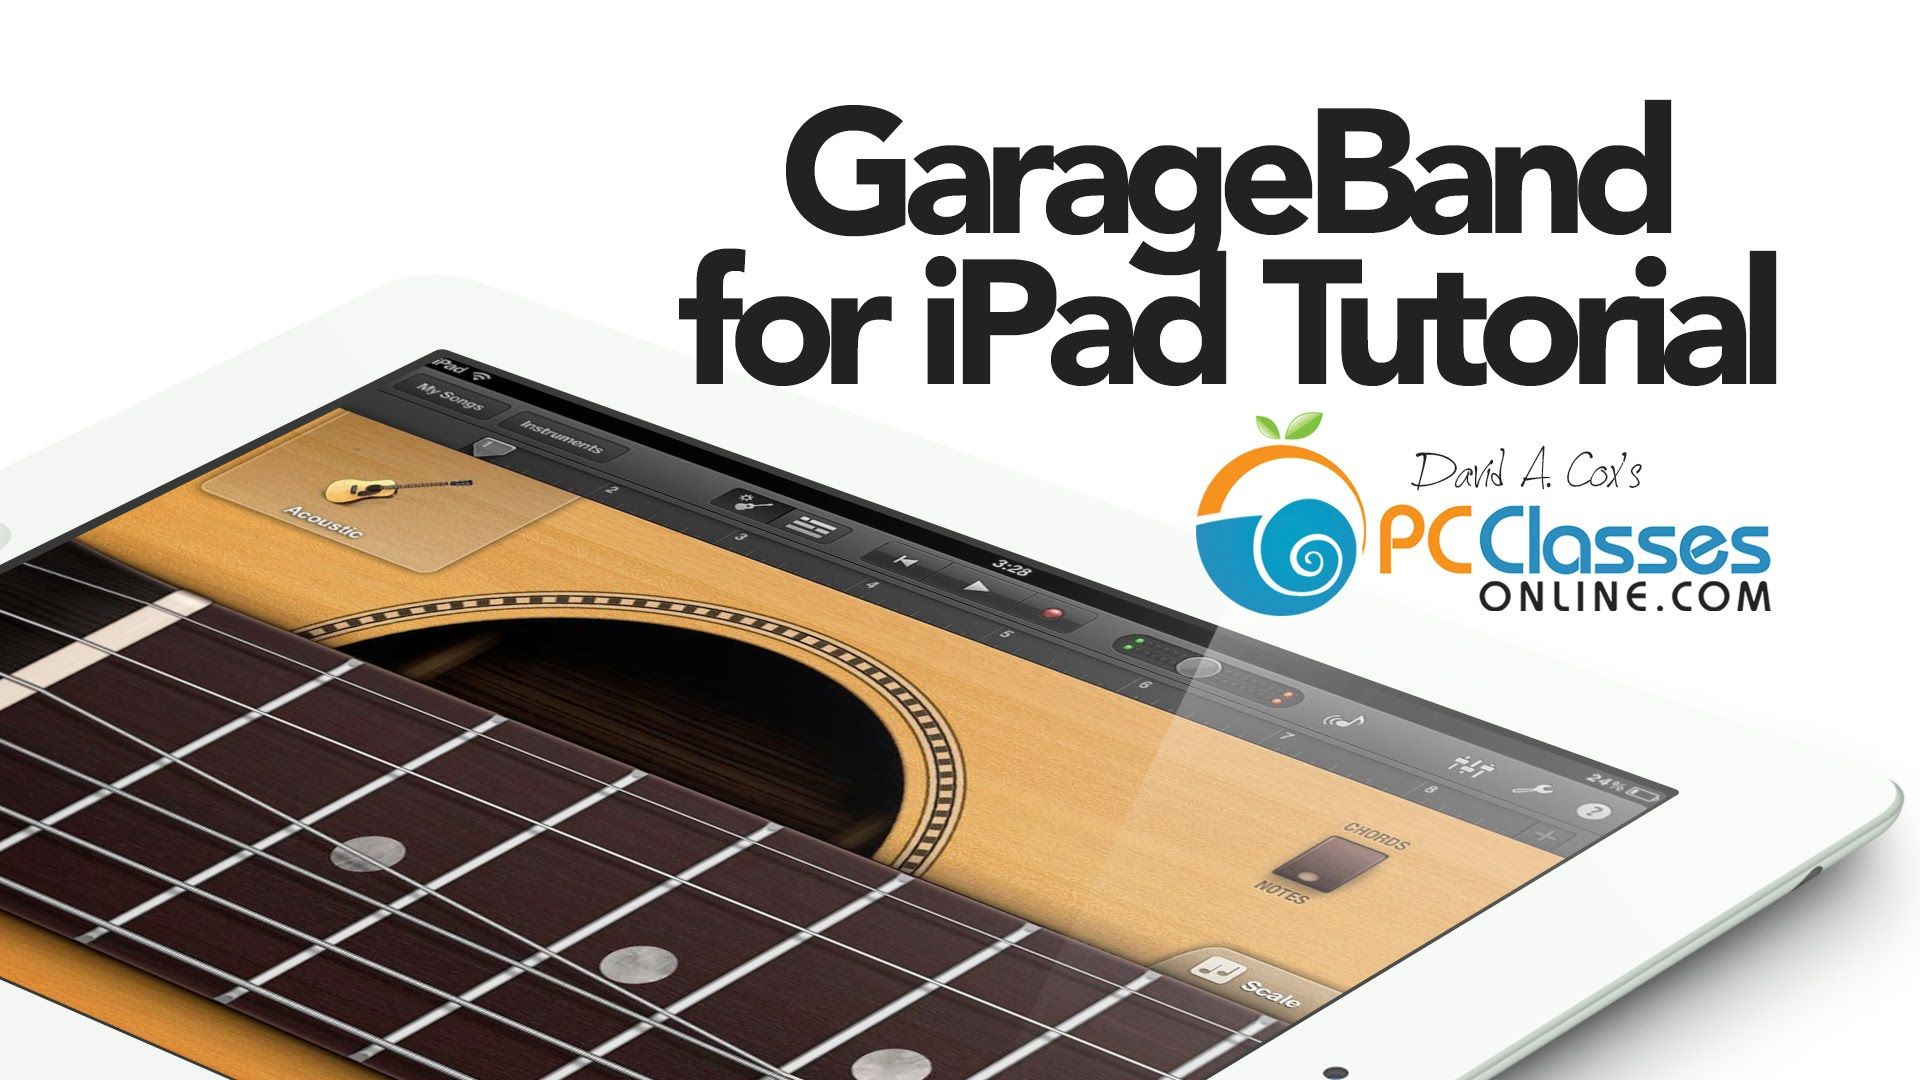 Garageband is one of our favorite apps for iPad. In this